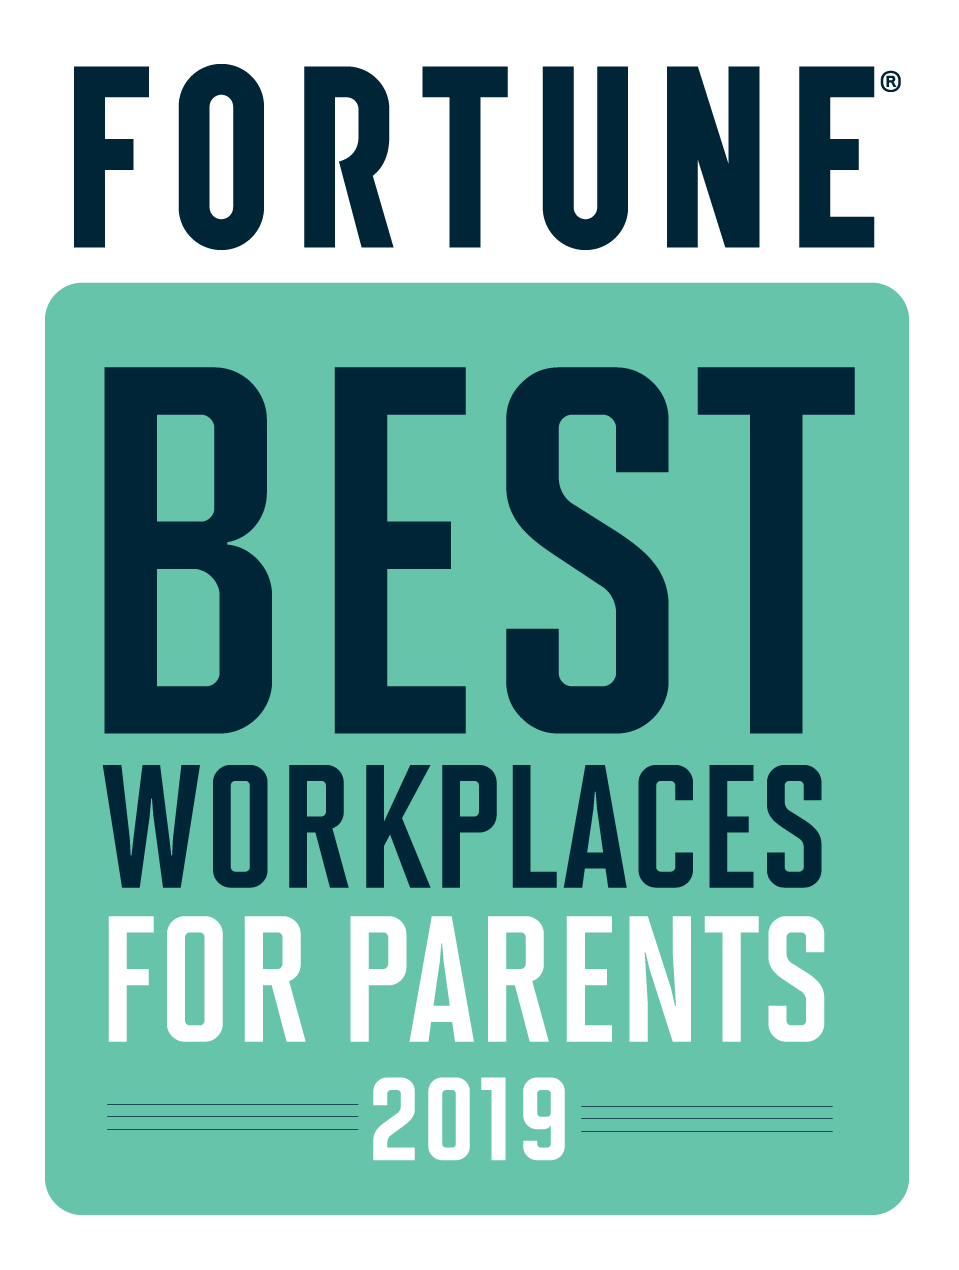 Fortune Best Place to Work for Parents 2019 Award